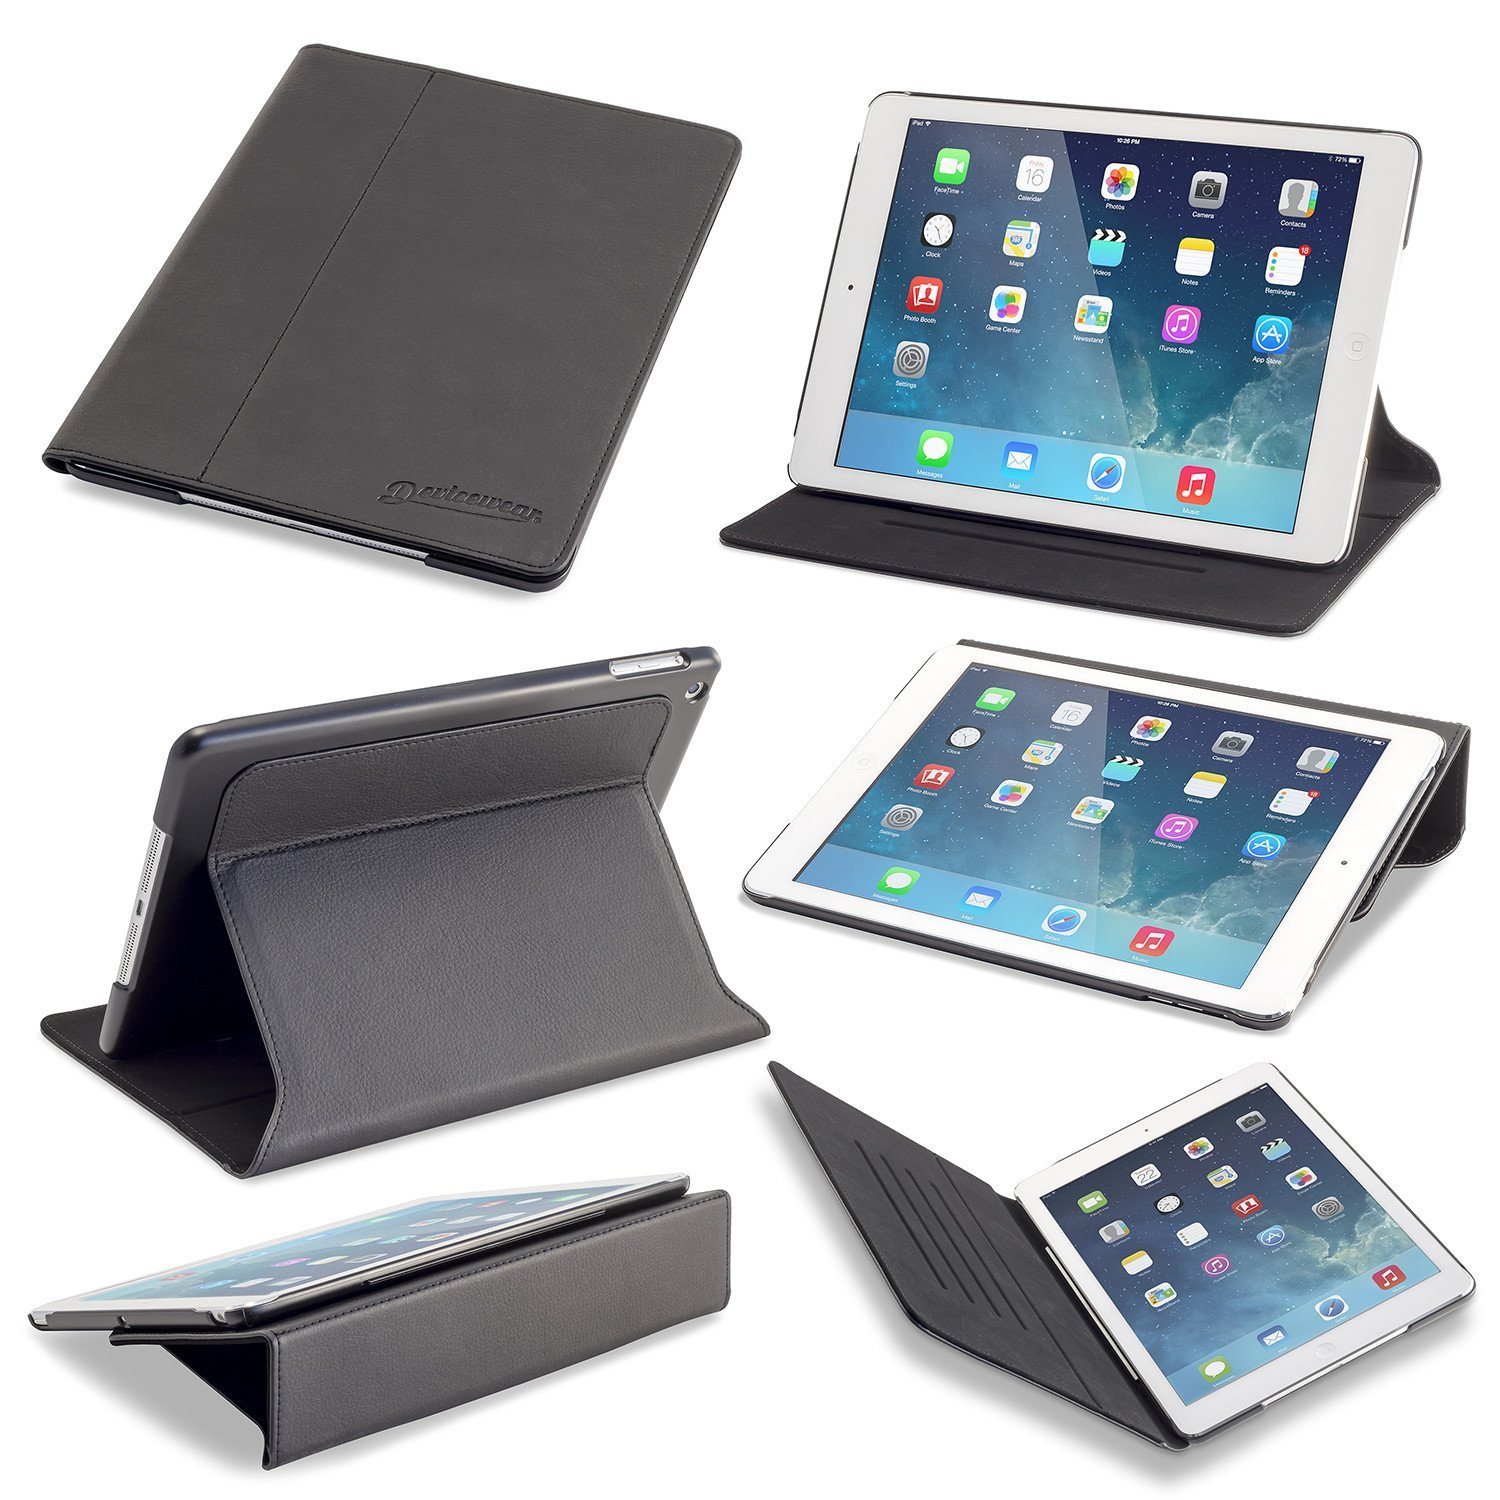 devicewear_slim_case_for_ipad_air_